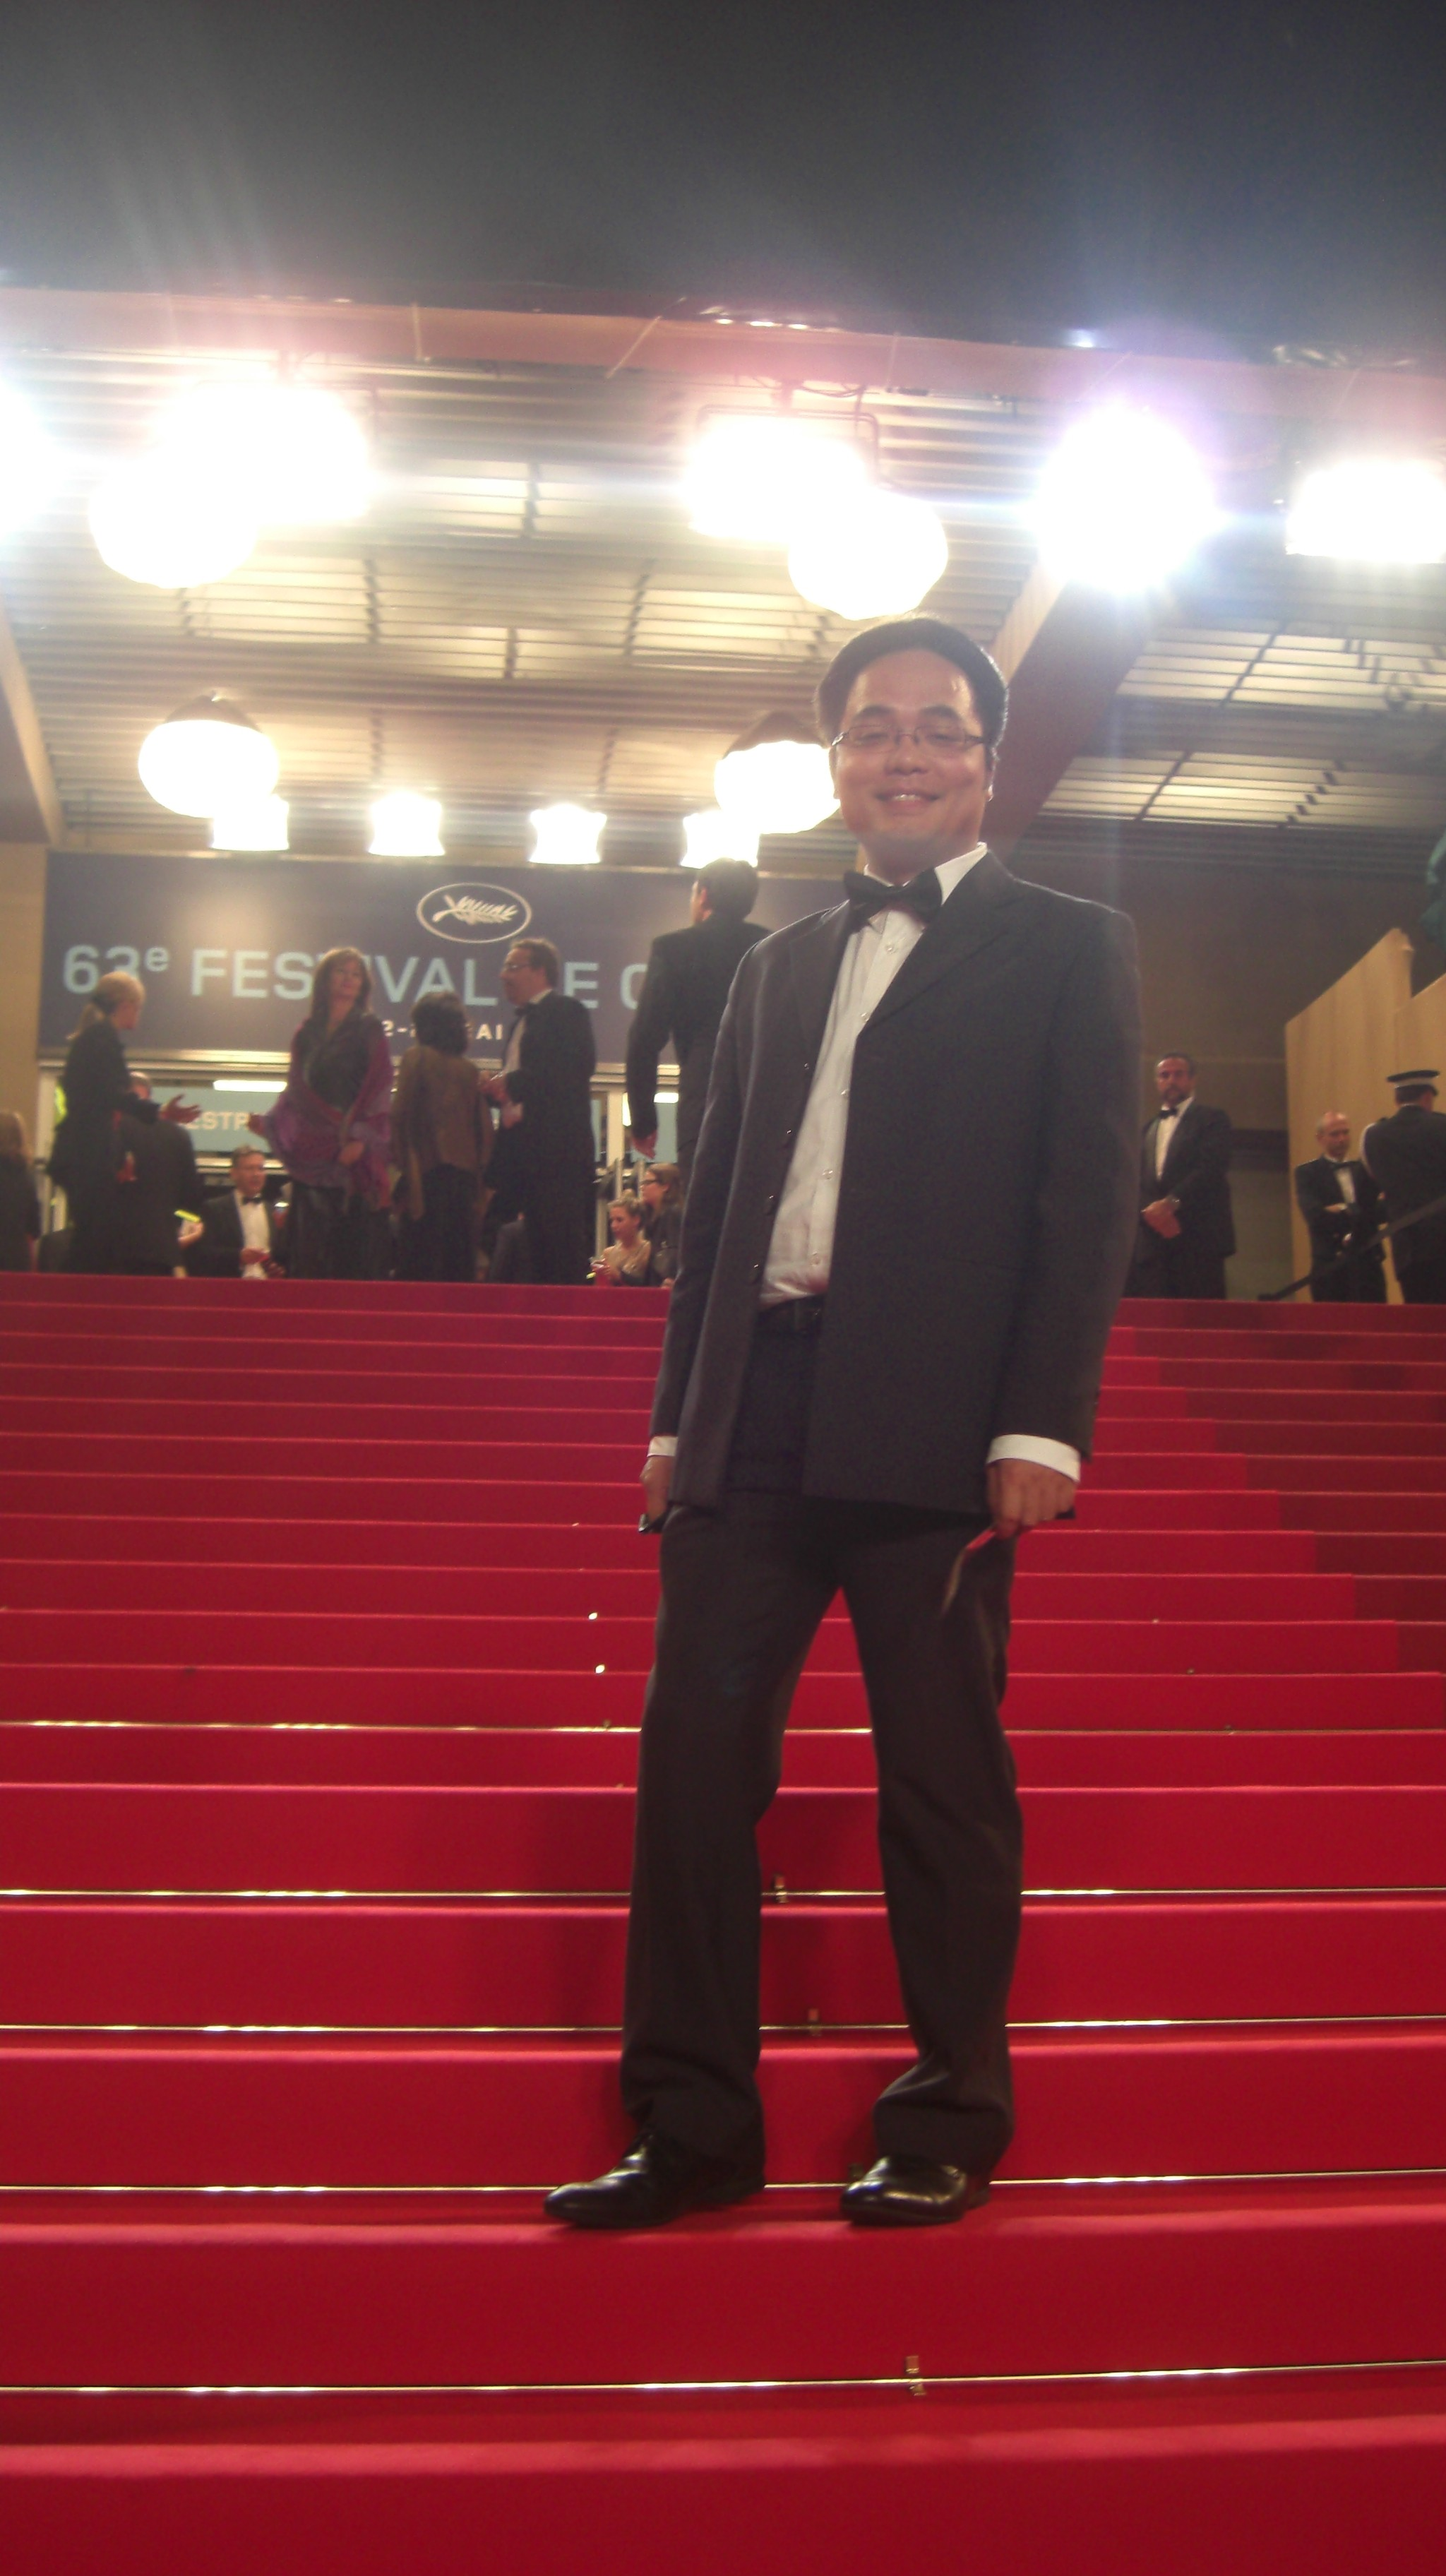 Phan Dang Di, director, on the red carpet in Cannes festival. @Arnaud Soulier